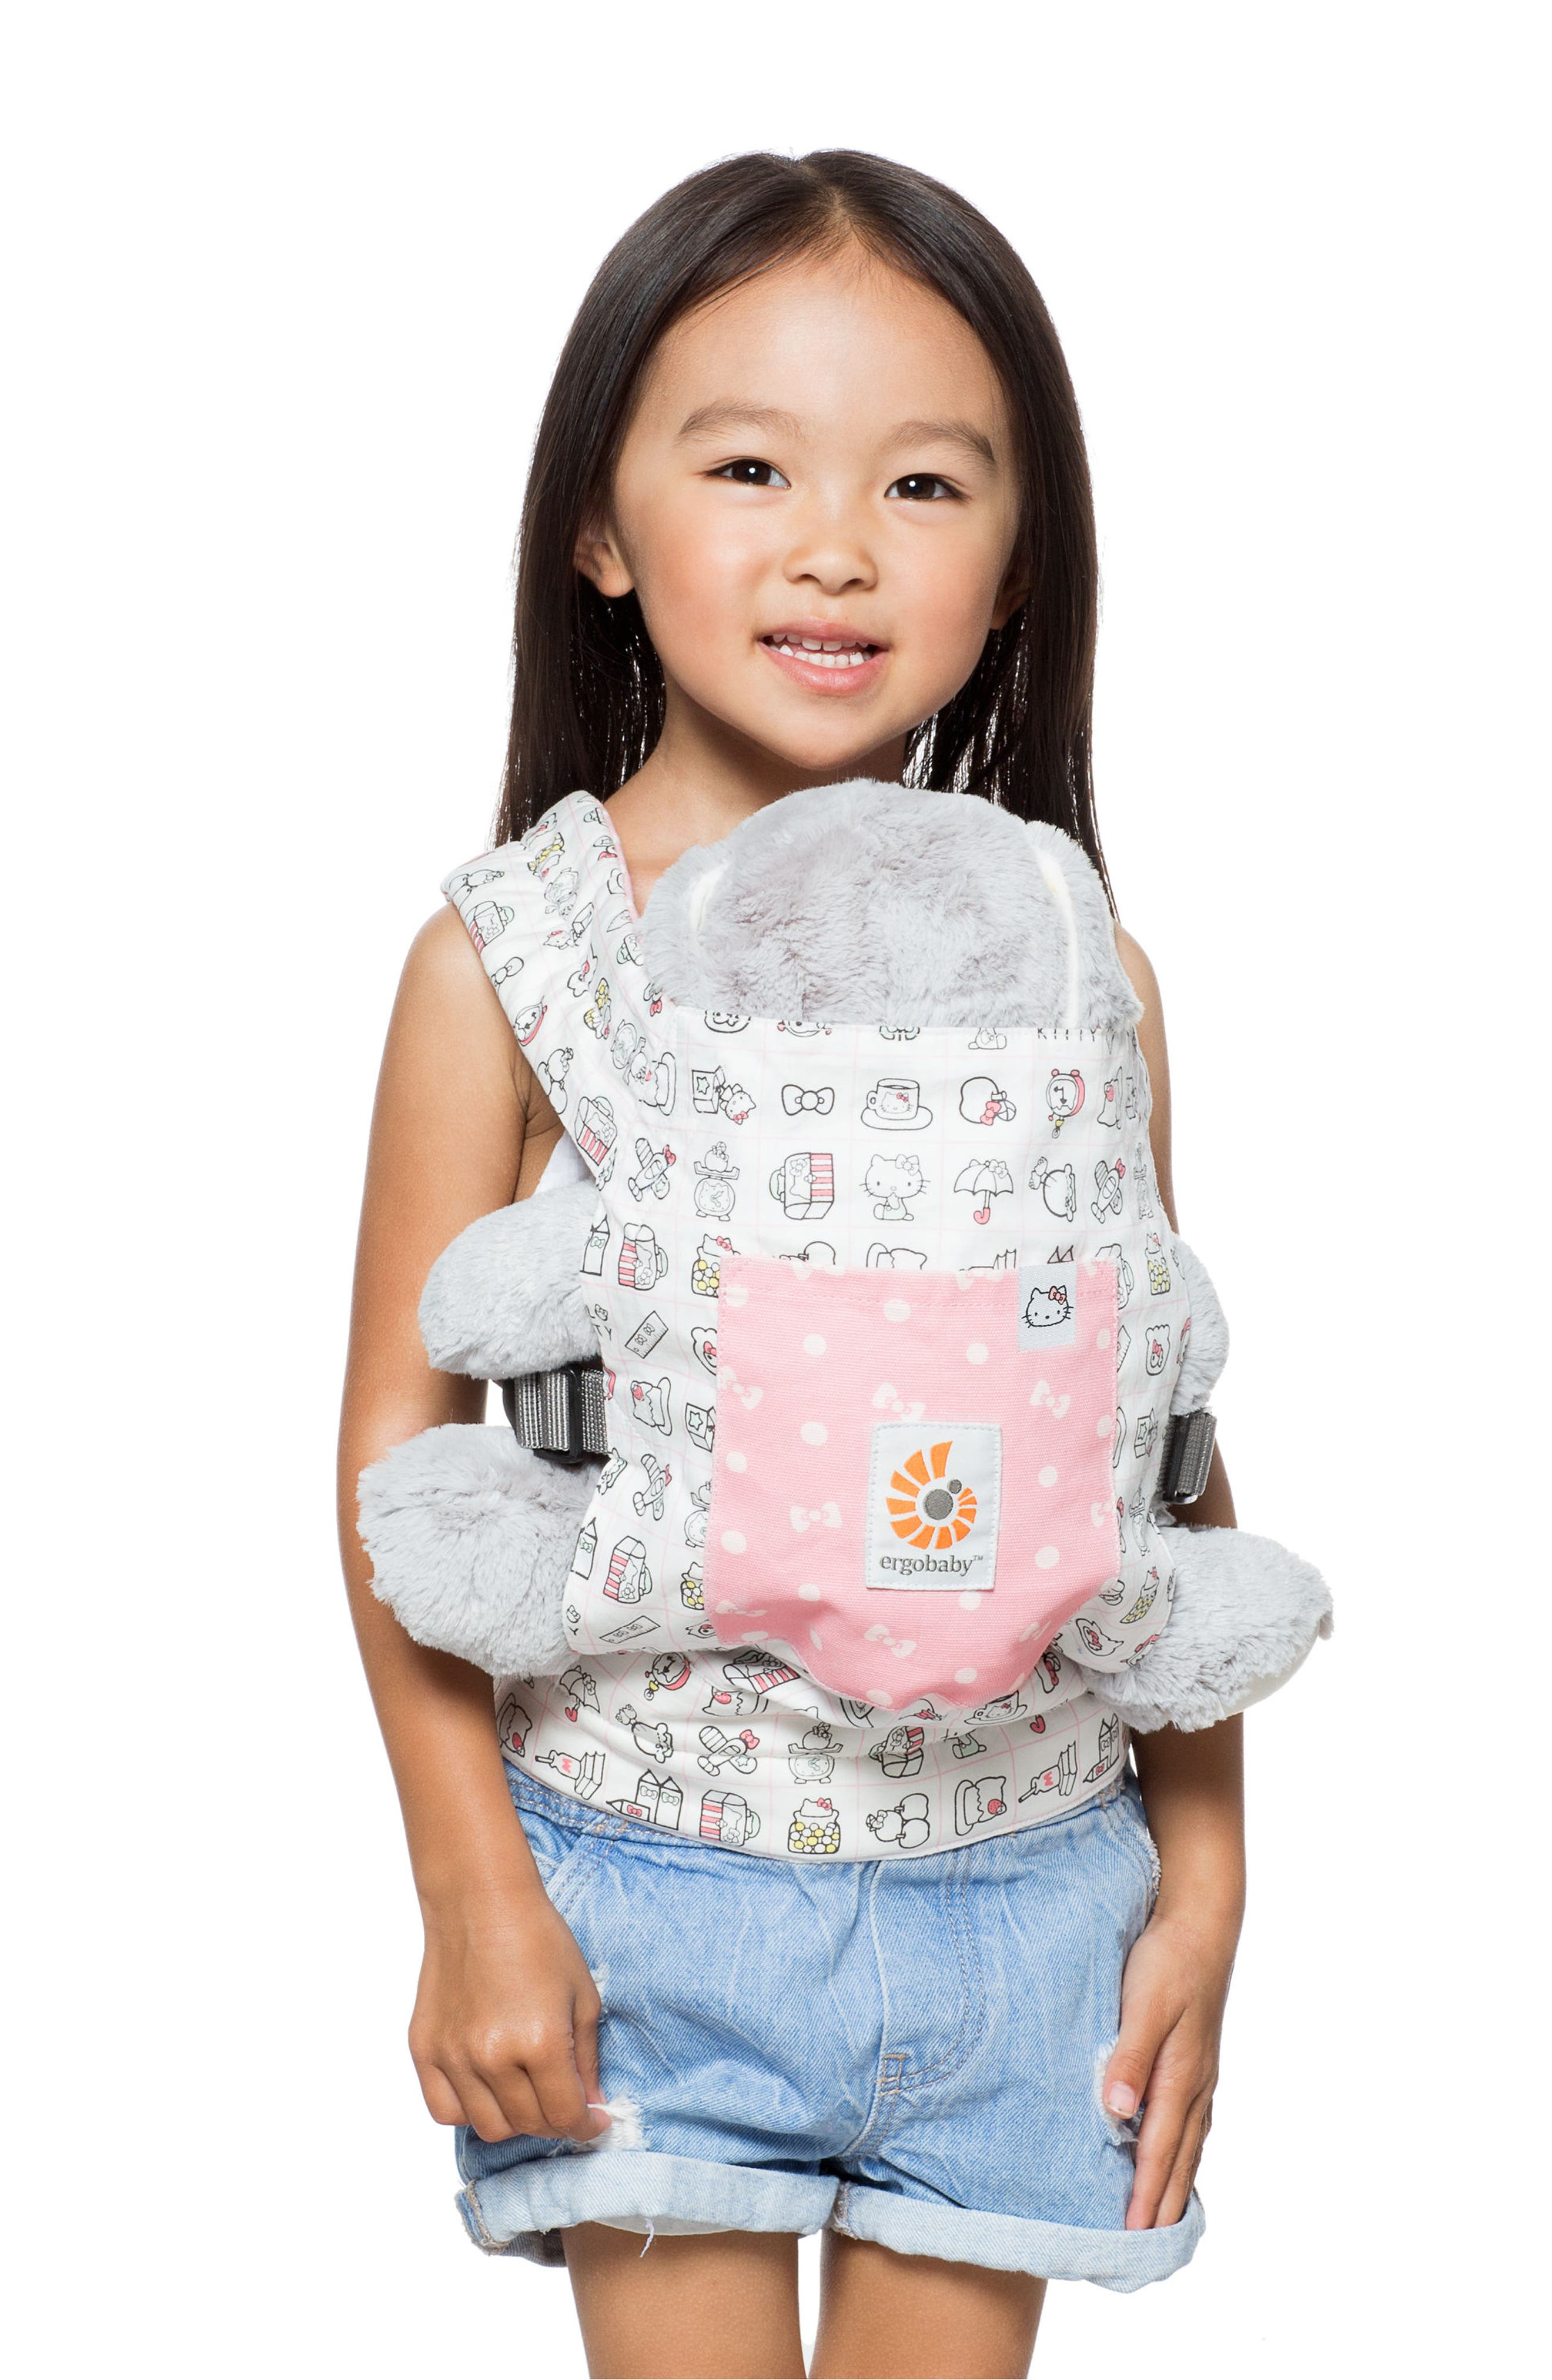 x Hello Kitty<sup>®</sup> Doll Carrier,                             Alternate thumbnail 4, color,                             400